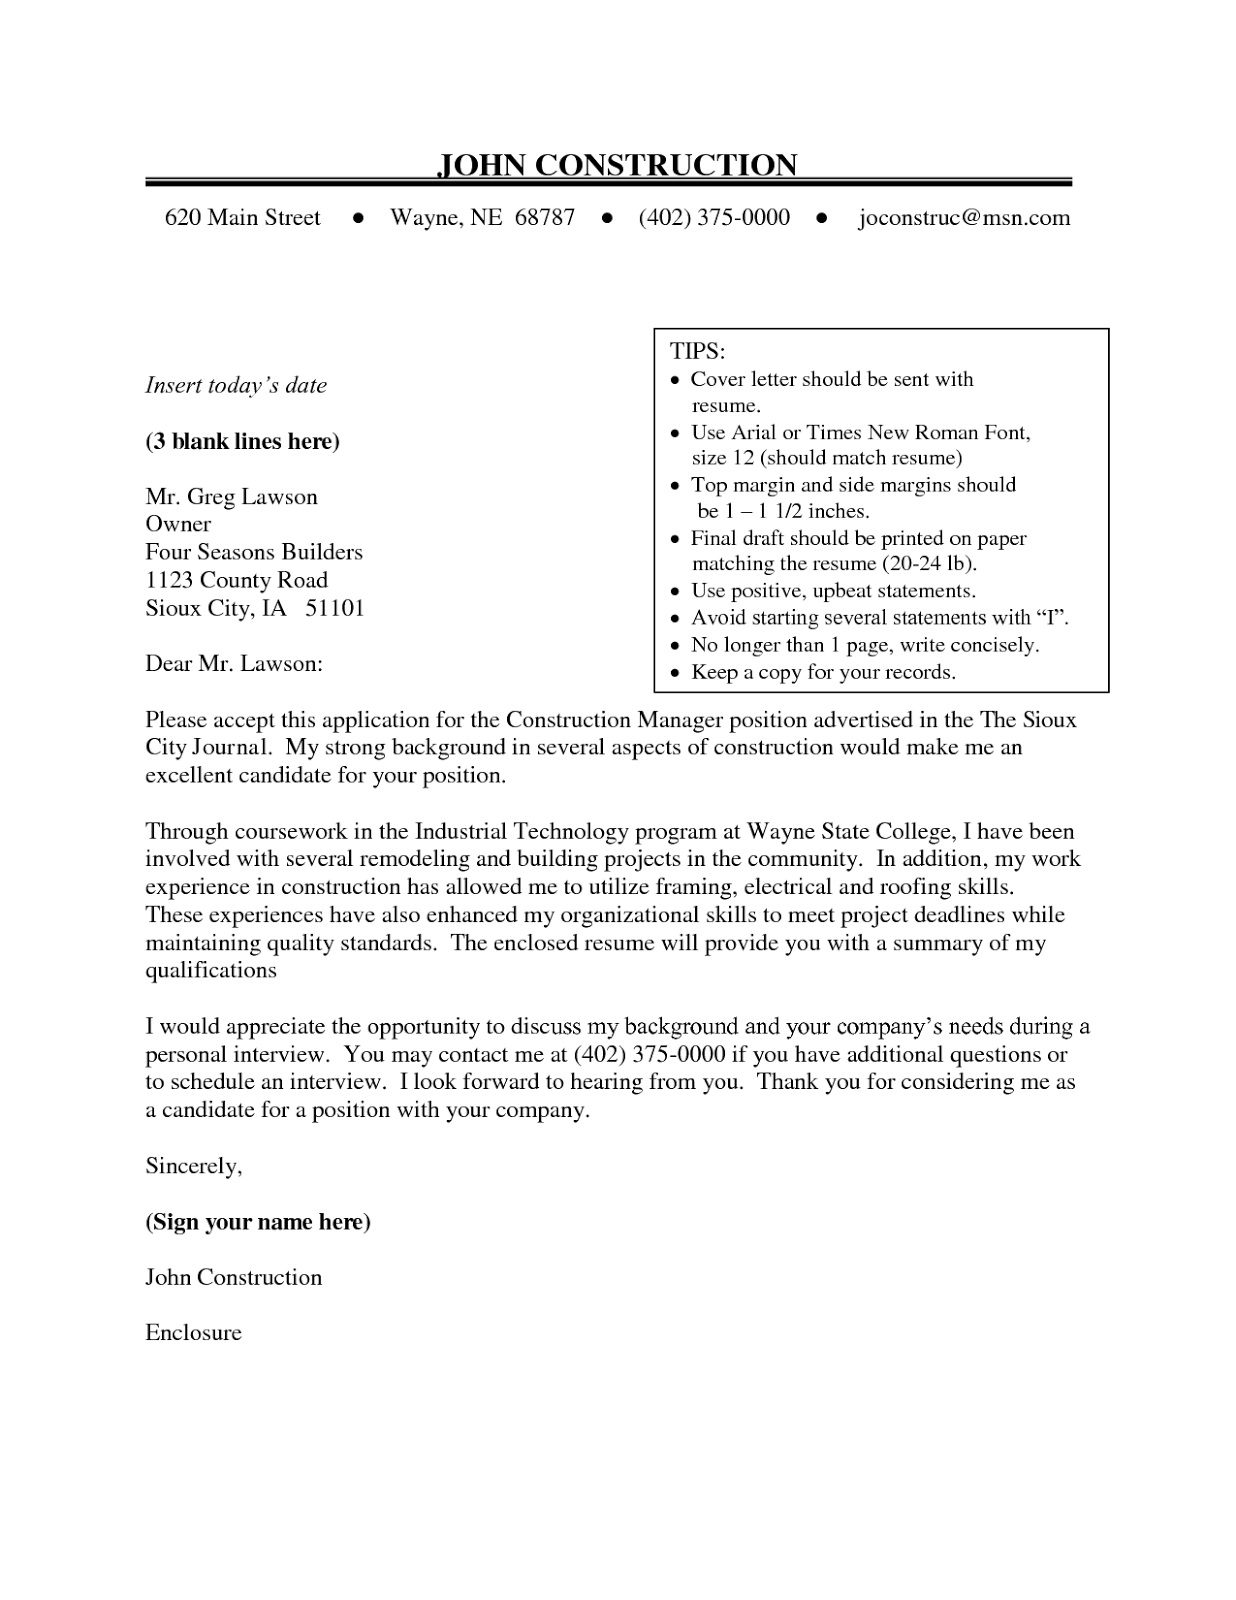 Essay Memories Popular Cover Letter Proofreading Websites For